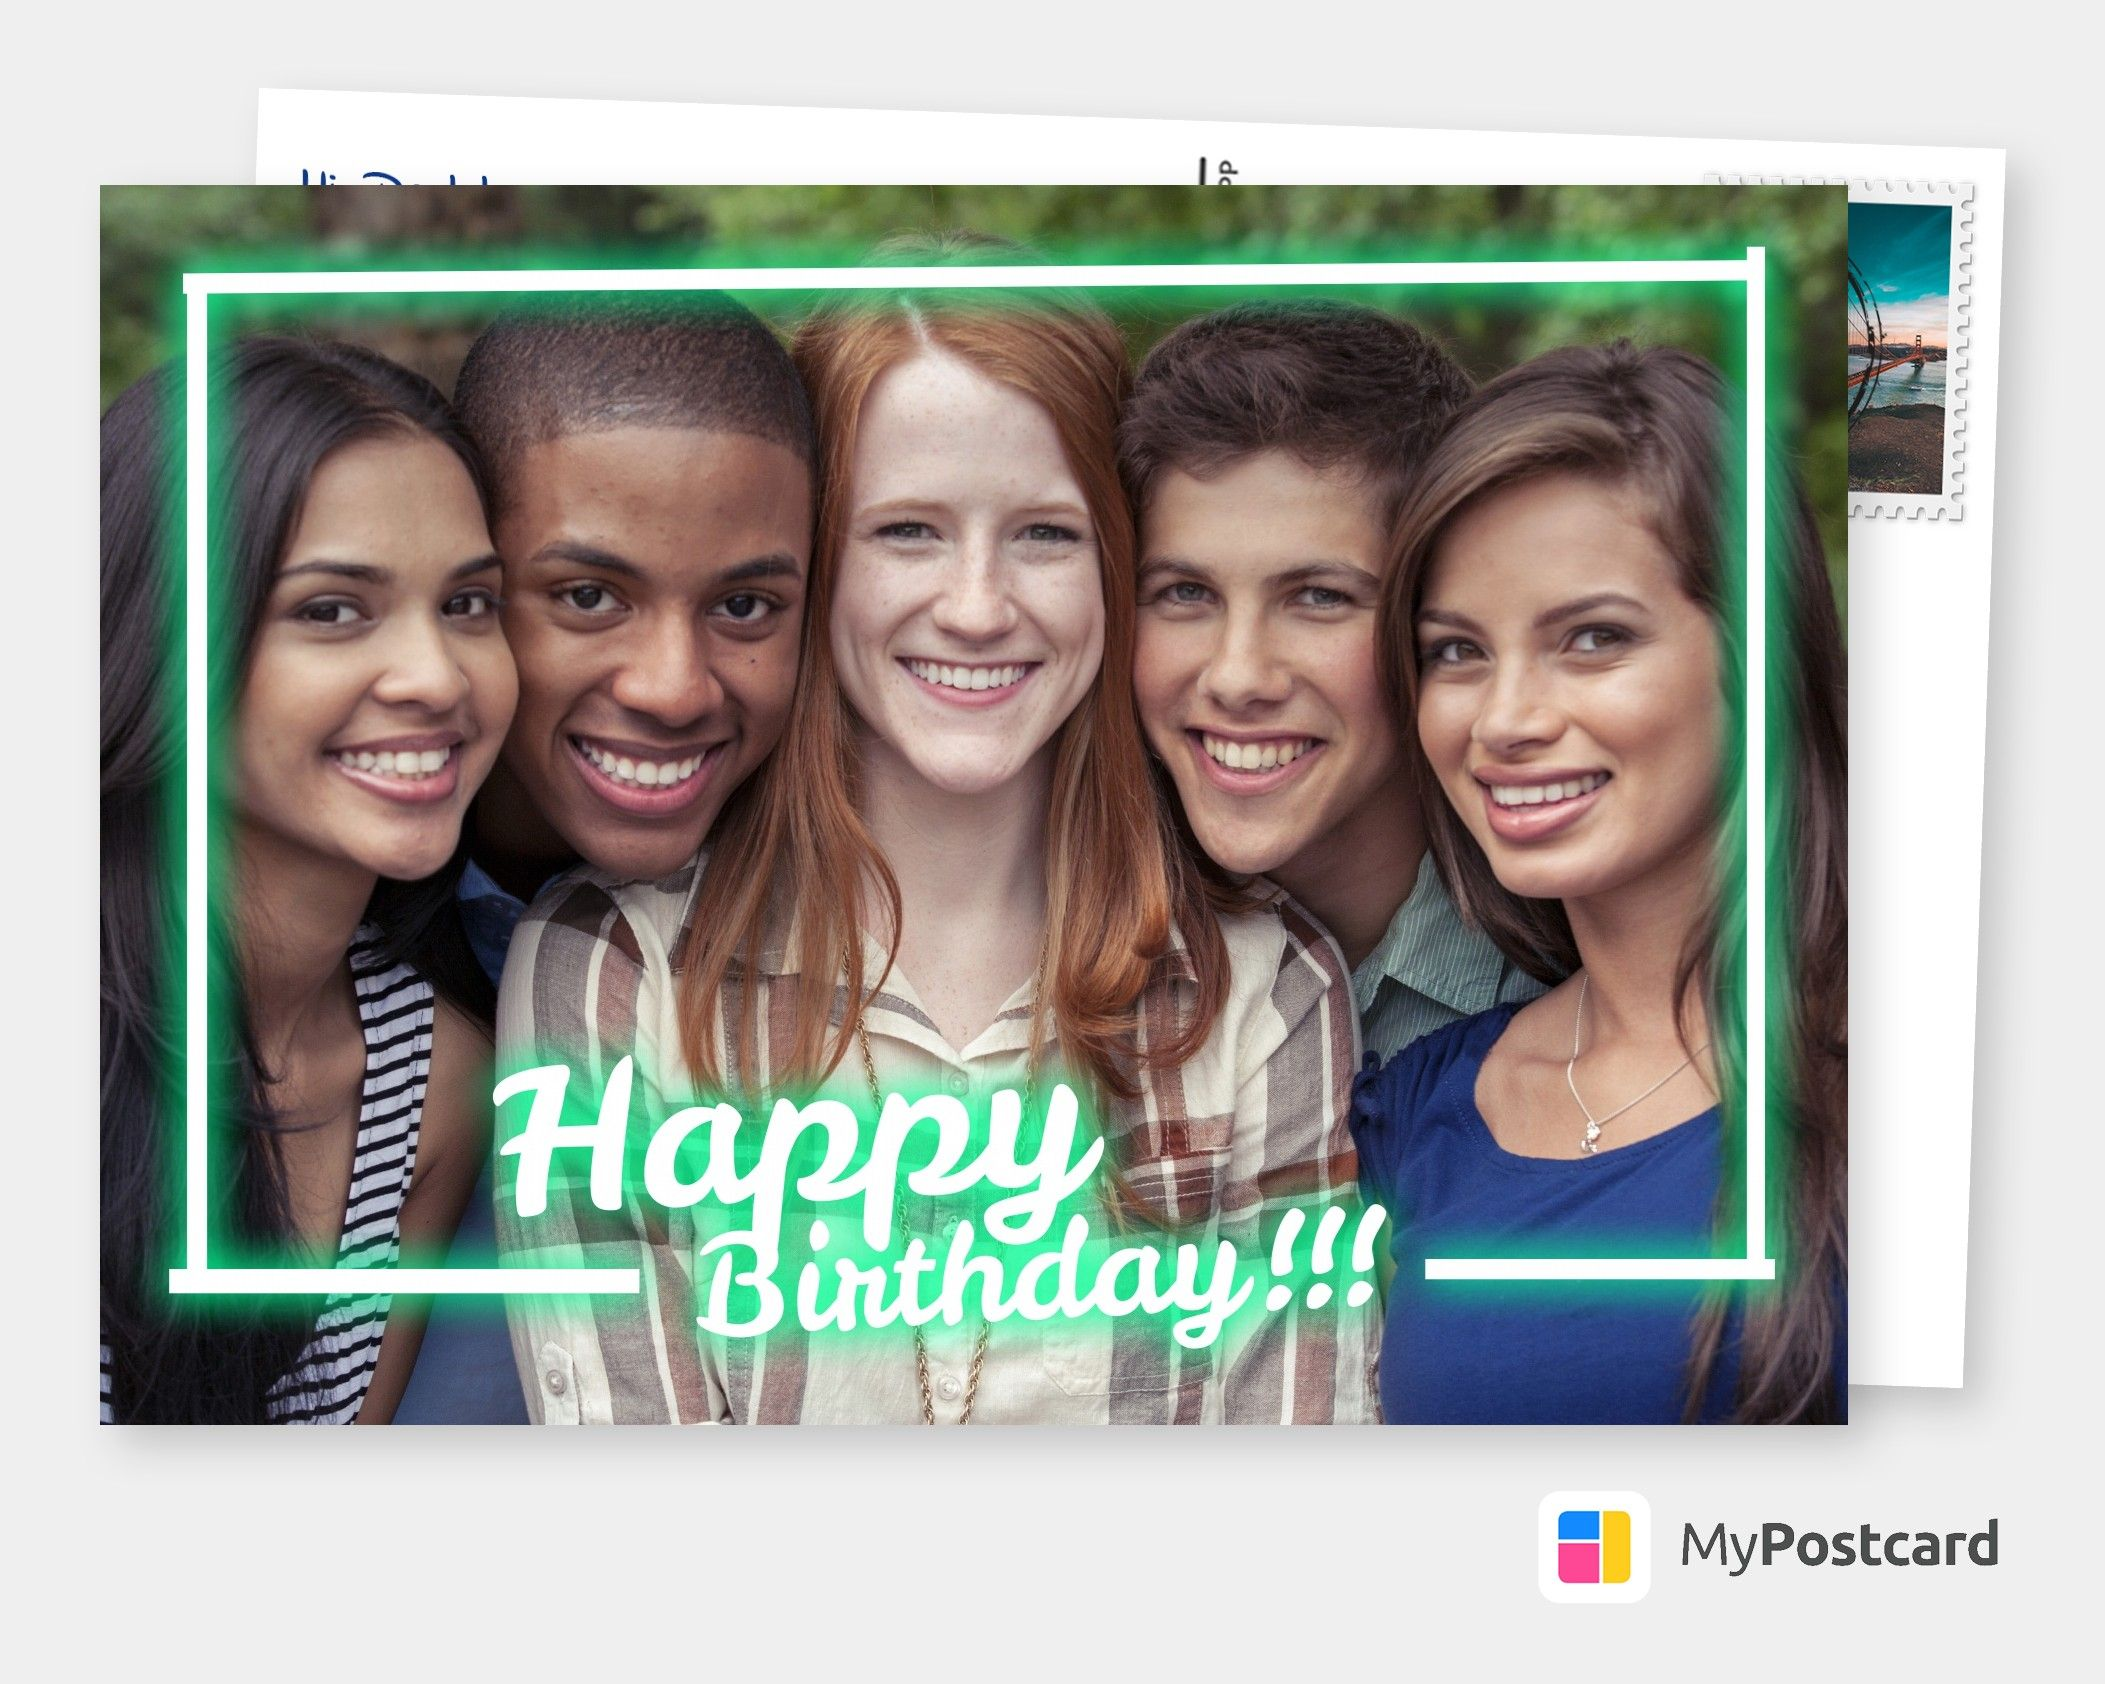 Personalized Photo Happy Birthday Cards | Free Shipping International | Templates use with Your Own Photos | Create and Send Your Photo Cards Online | Printed & Mailed For You International